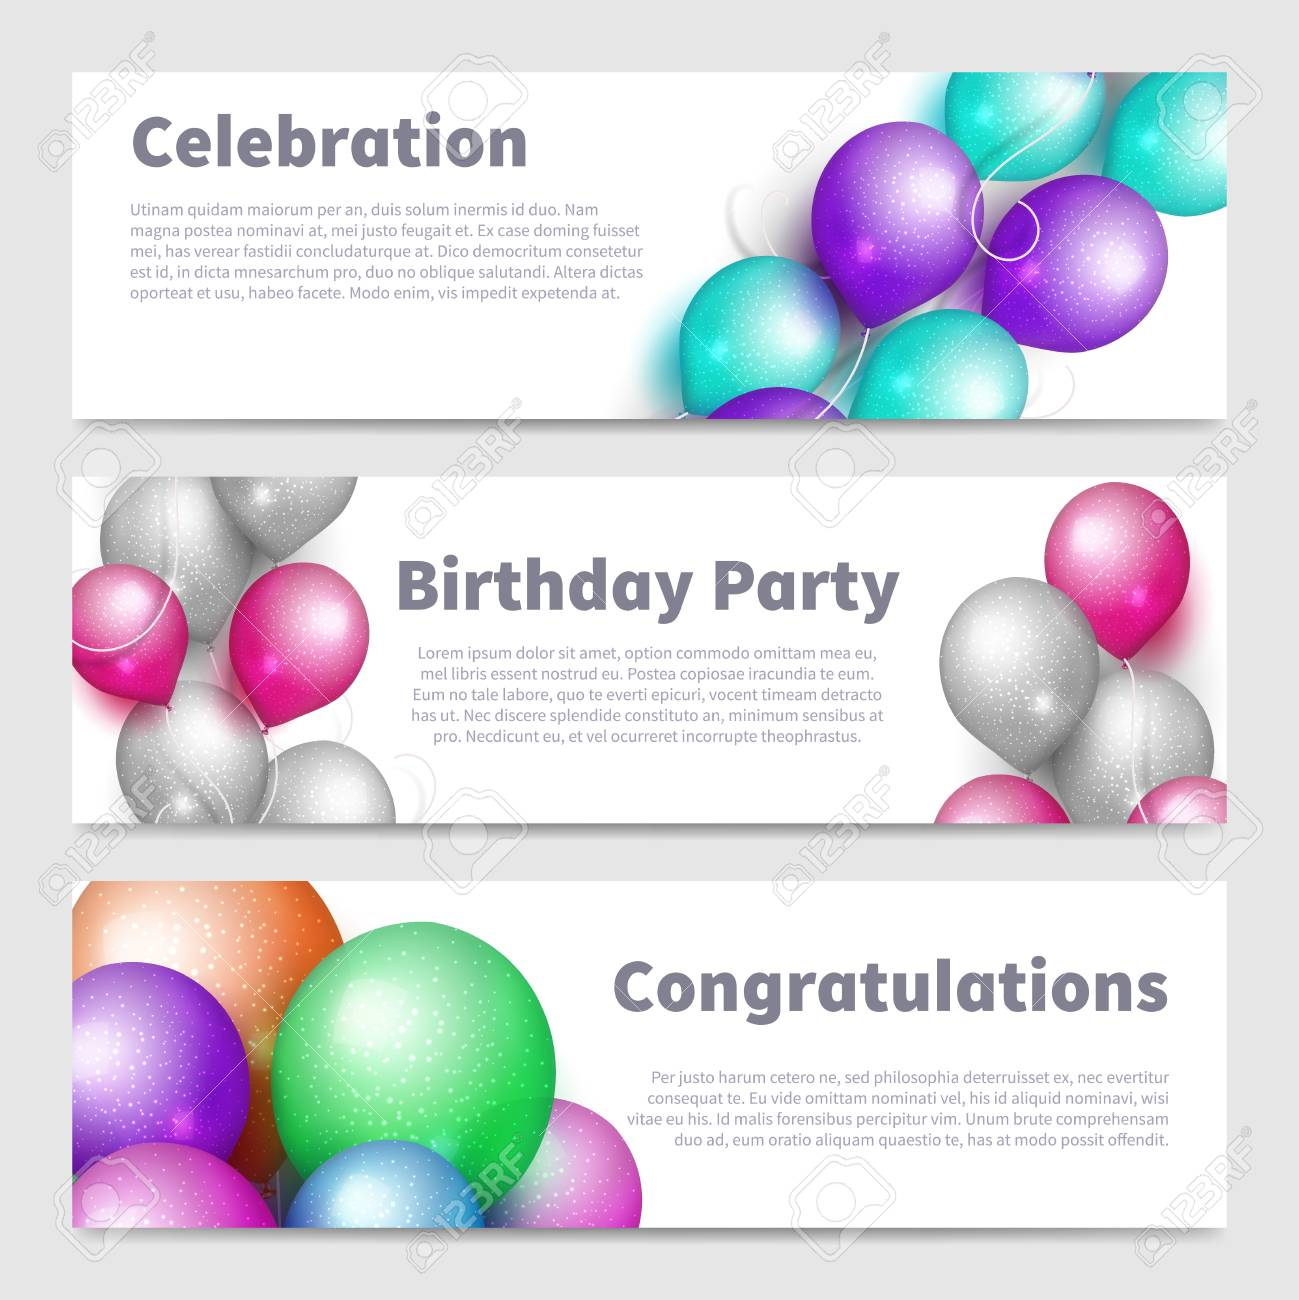 Birthday party banners with celebration realistic balloons vector set isolated on white illustration - 110256338